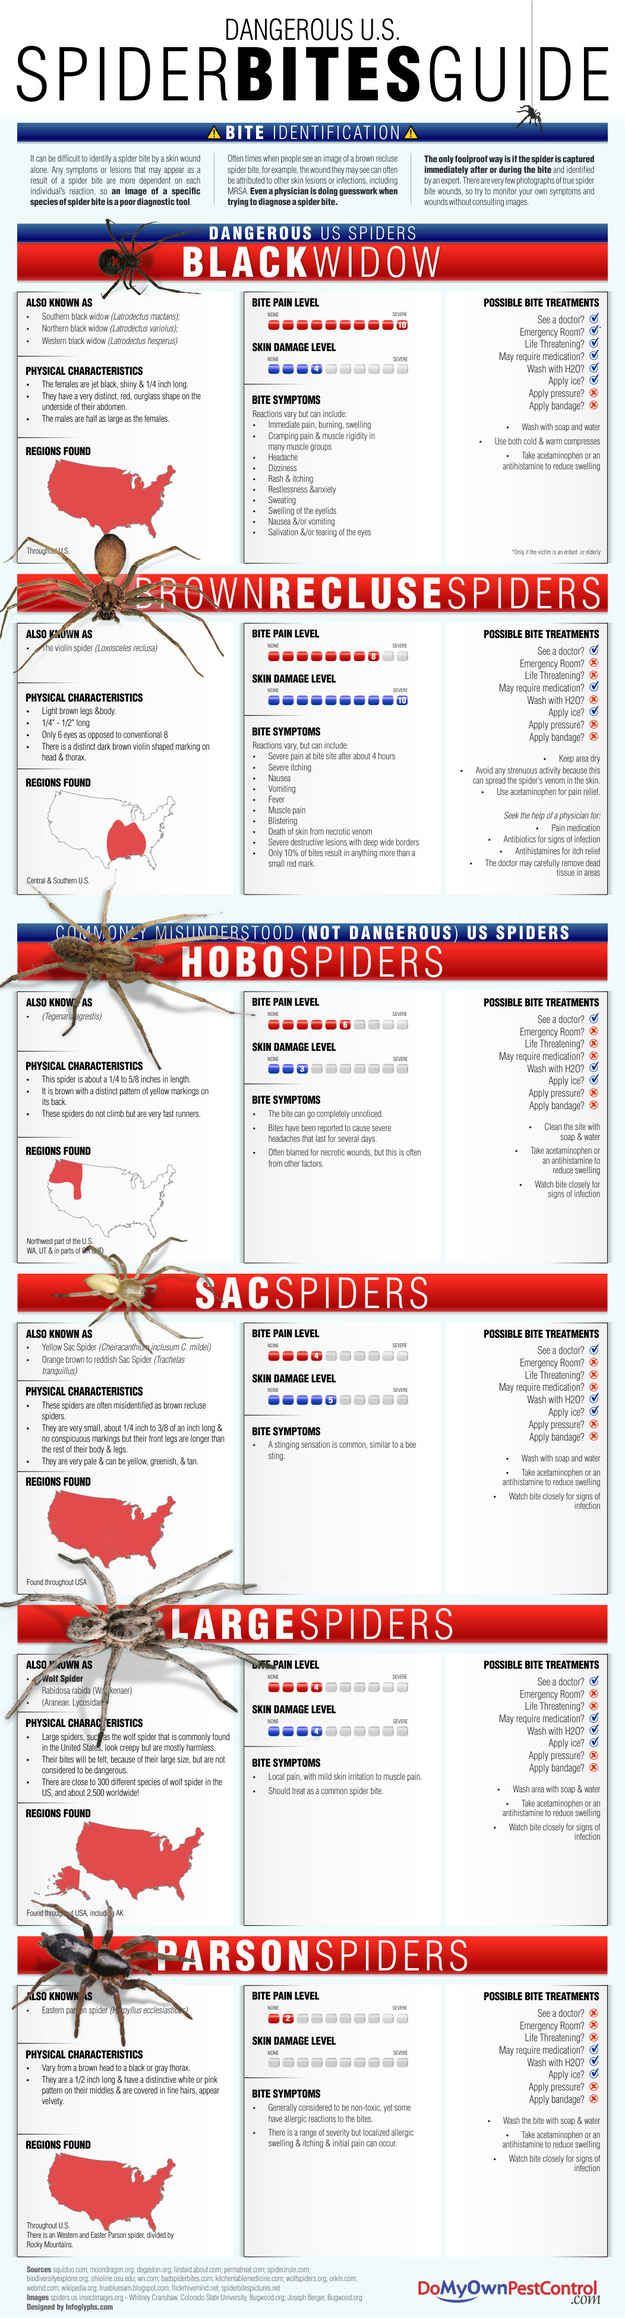 Guide to Spider Bites